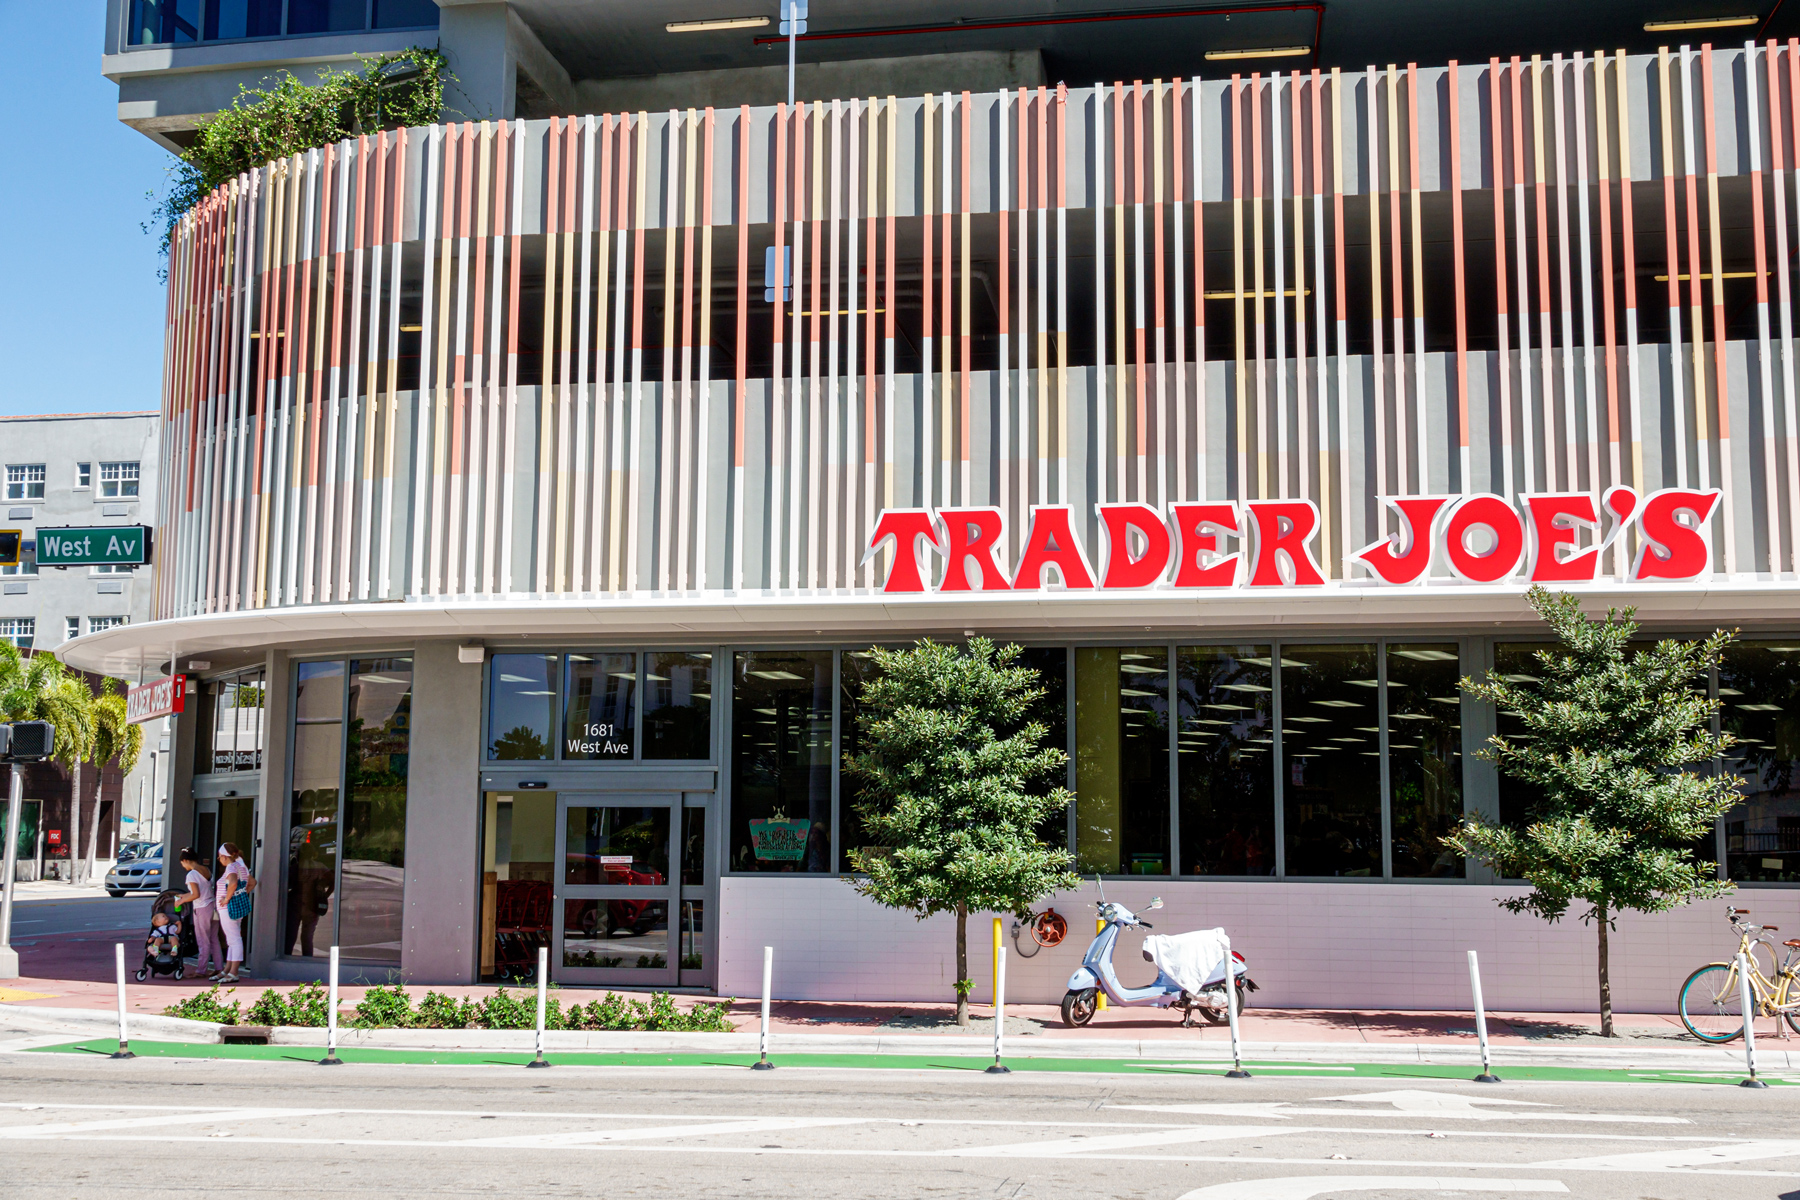 Trader Joe's grocery store exterior